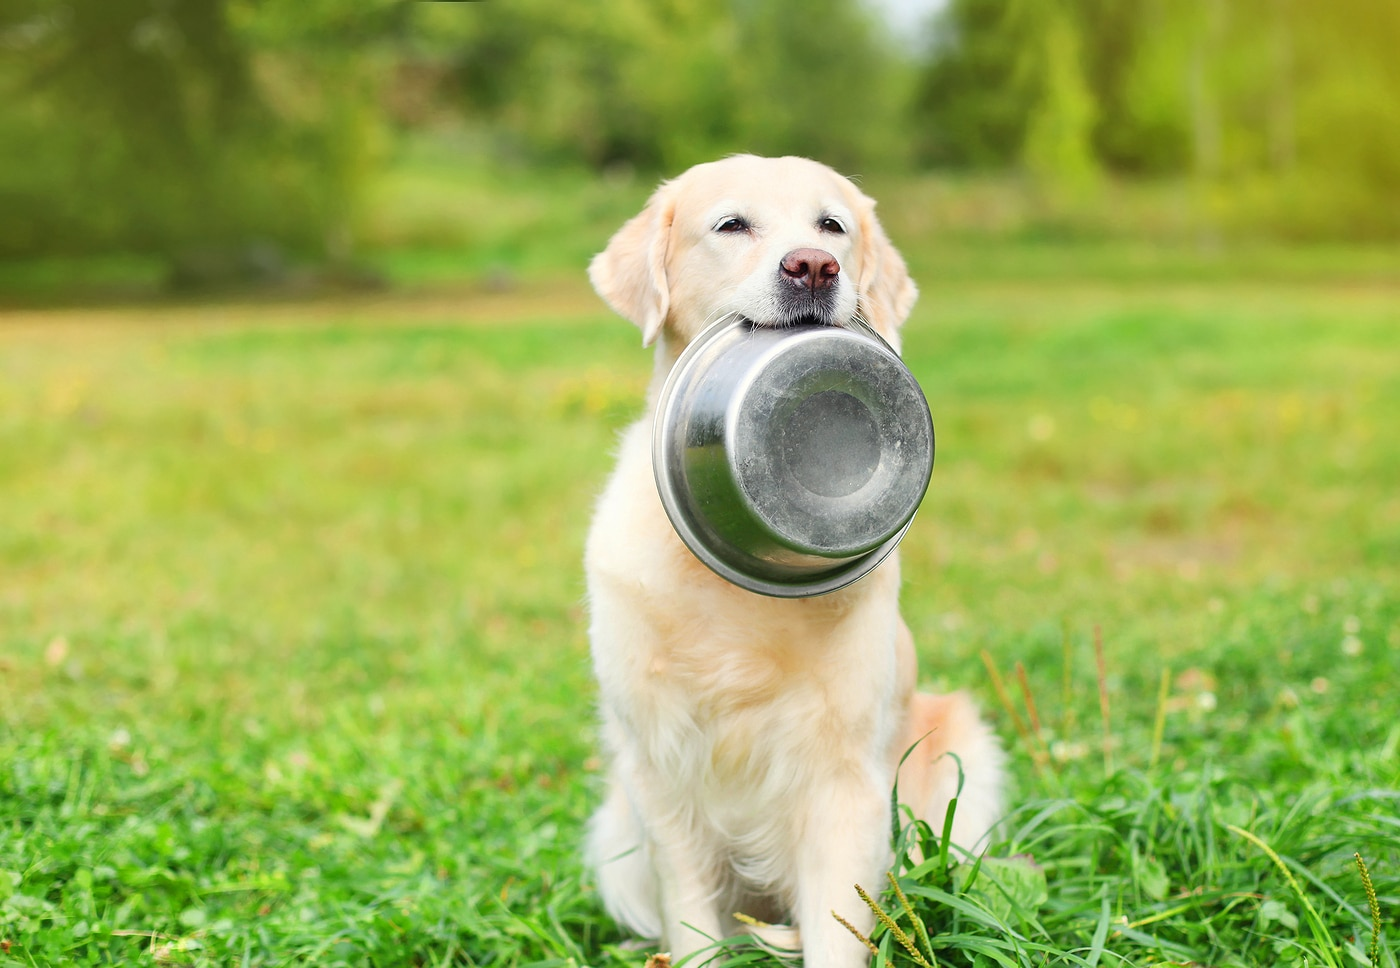 Golden Retriever dog holding metal dog food bowl in mouth outside in green park.